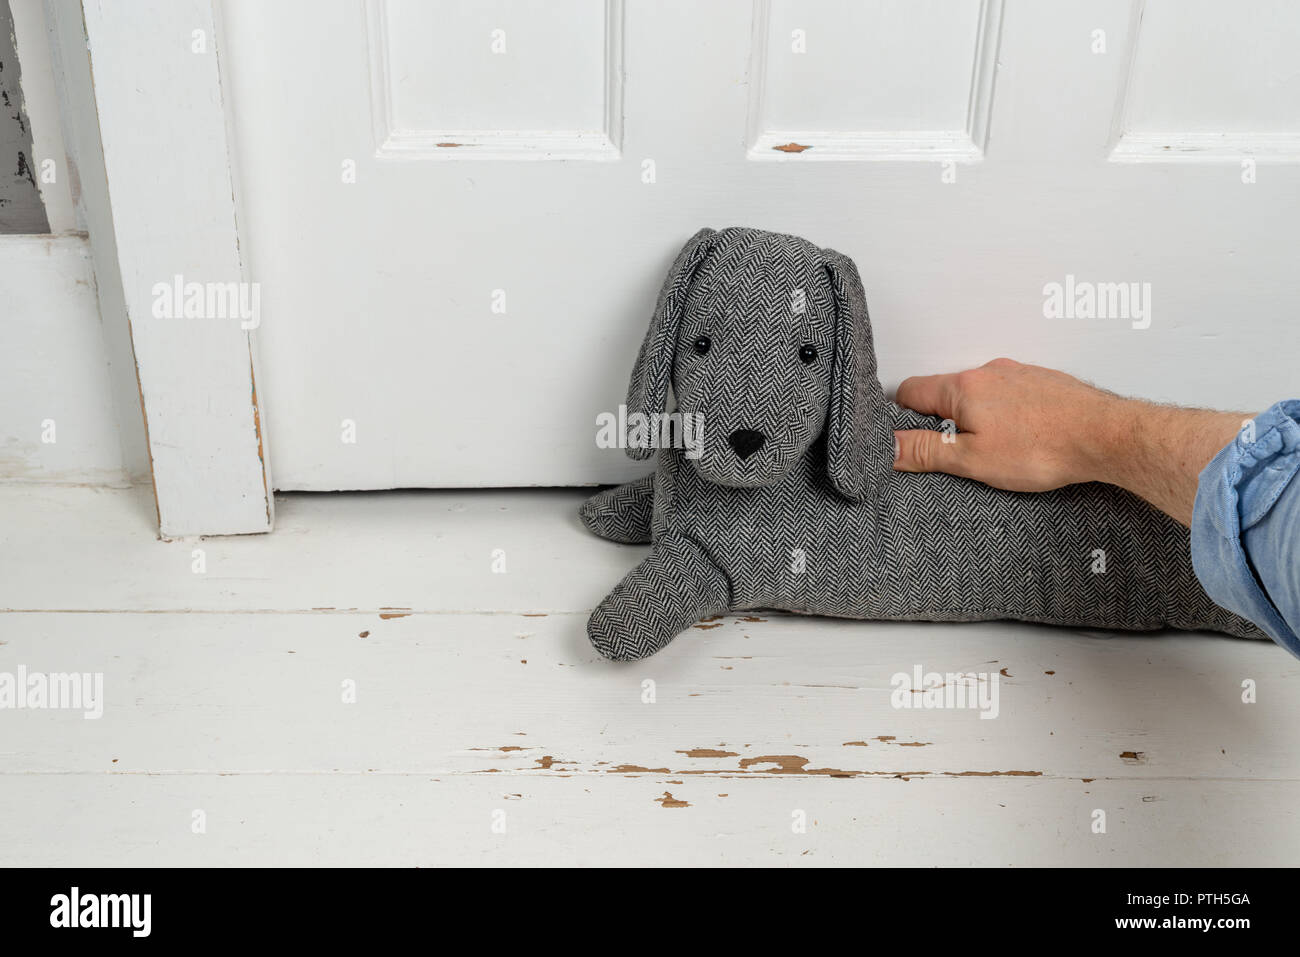 A man places a dog shaped draught excluder in front of a door. - Stock Image